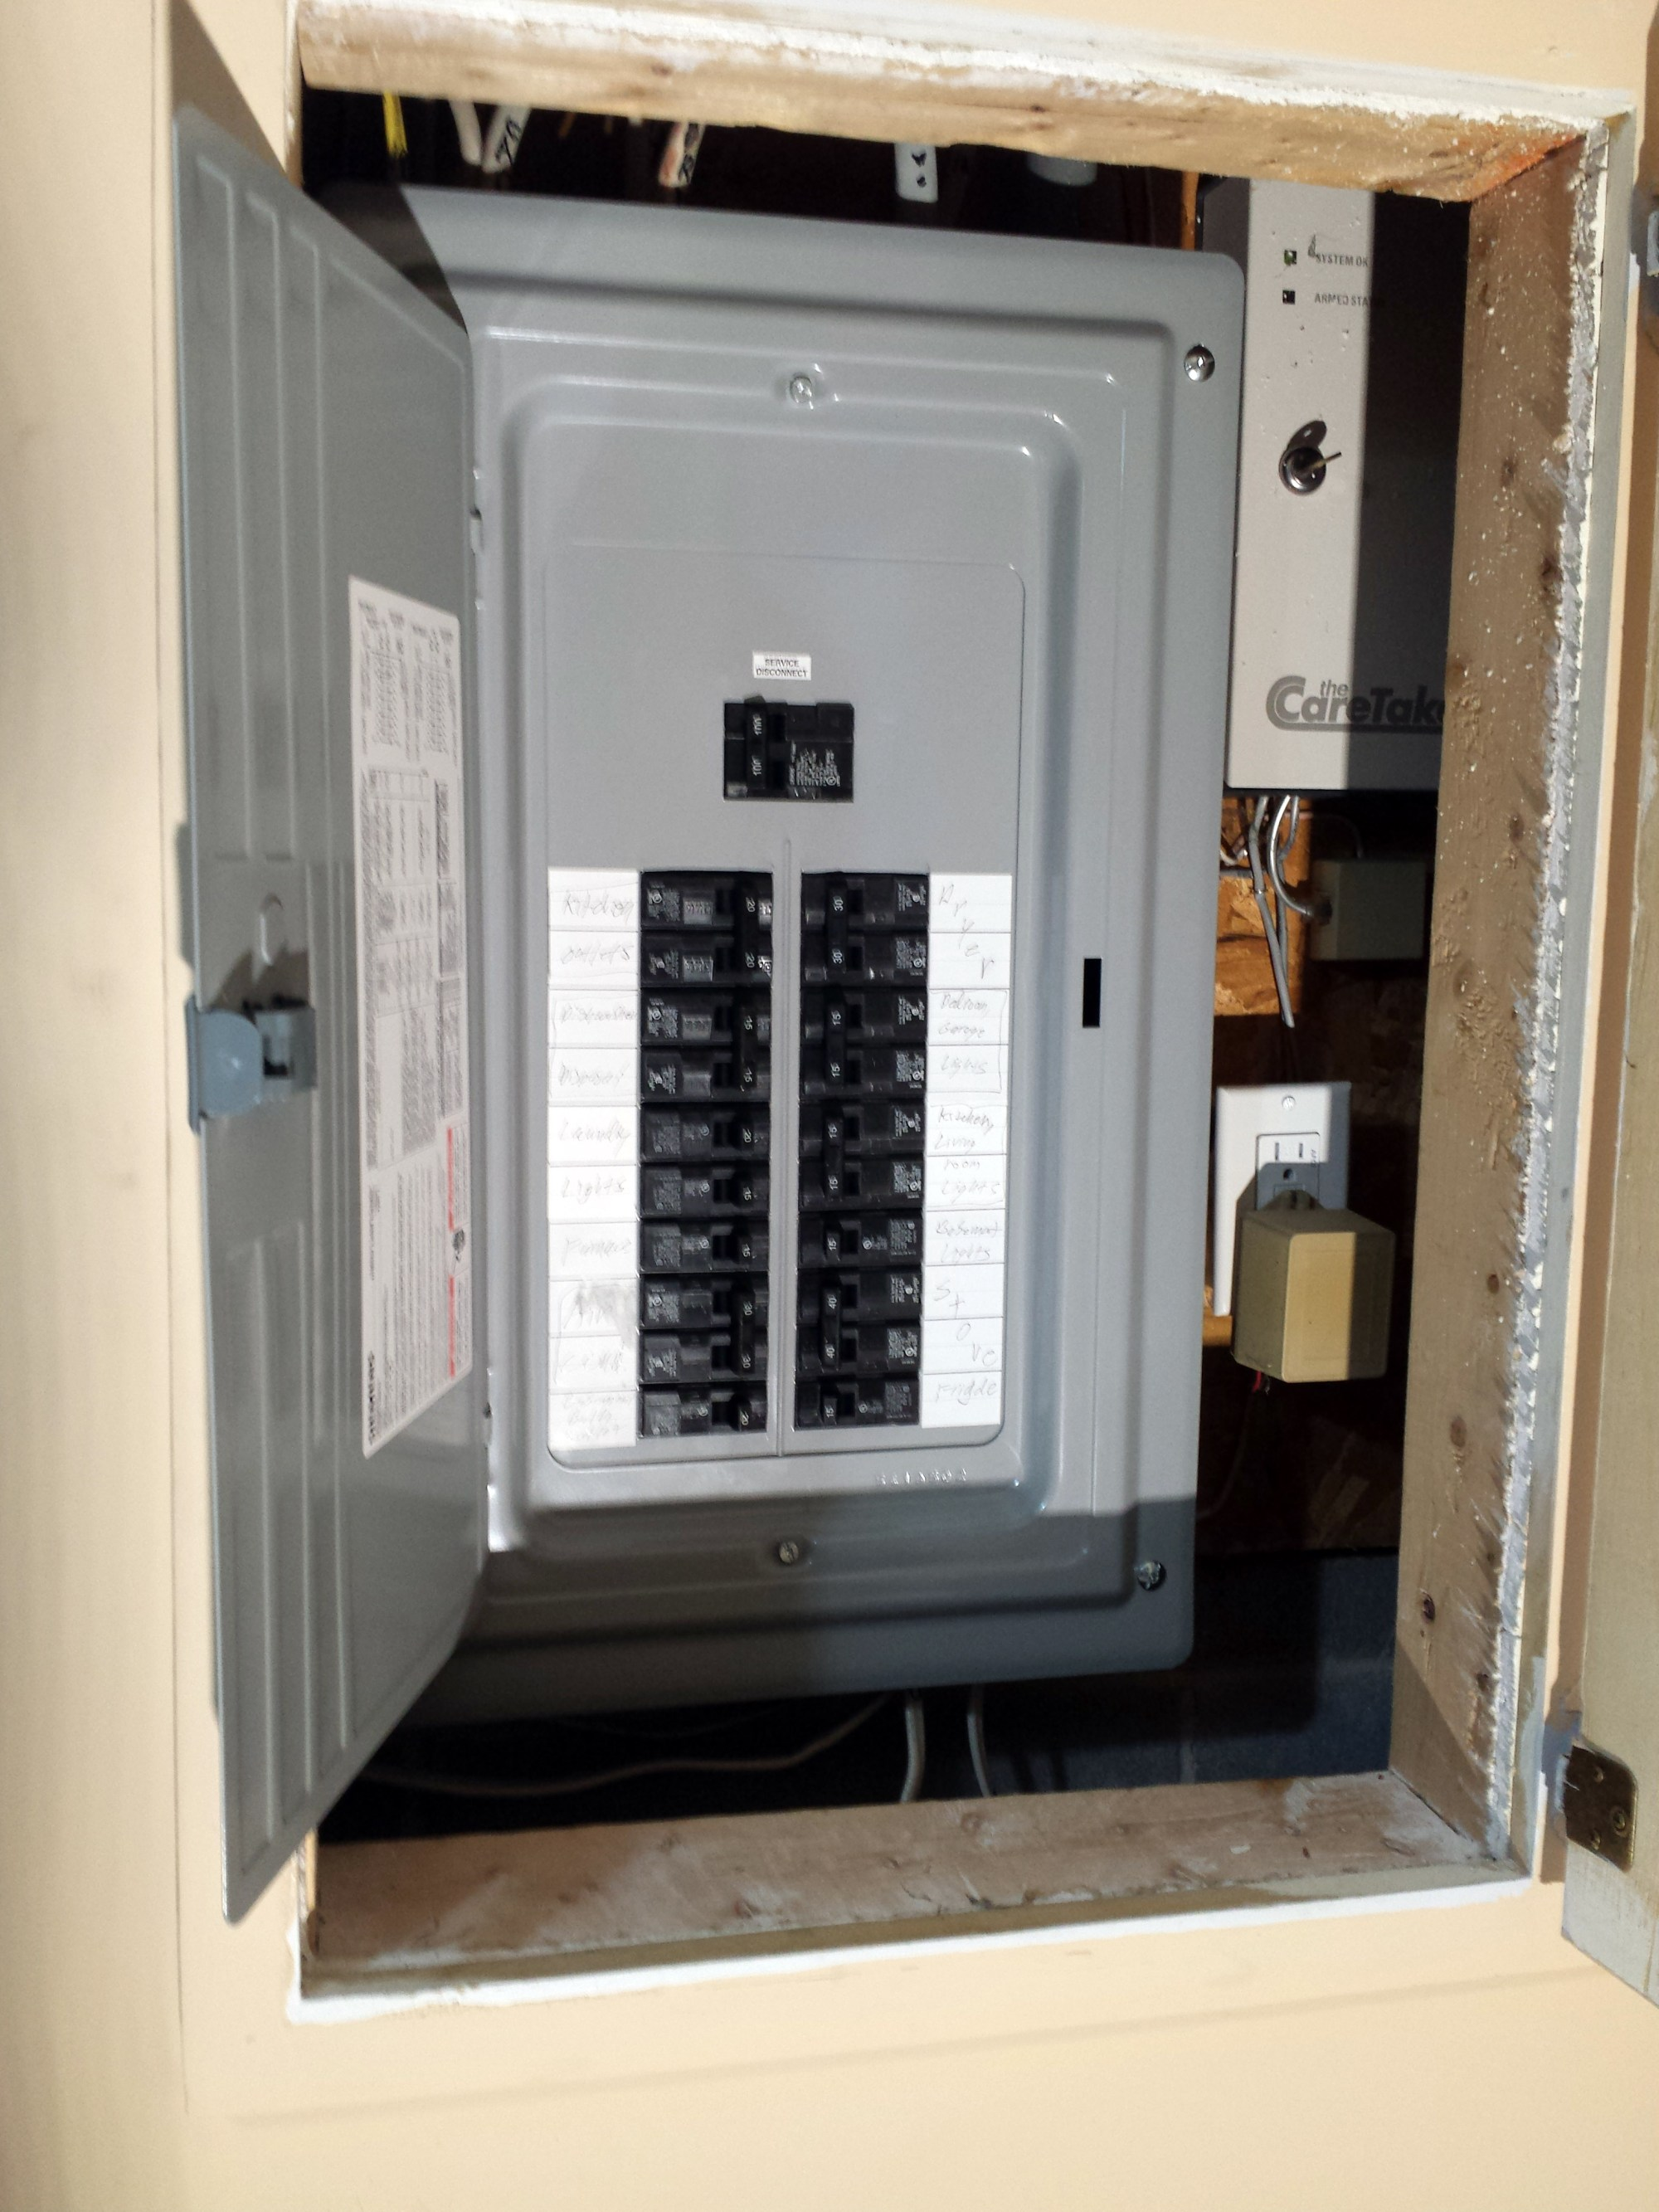 hight resolution of replace fuse box replace fpe breakers total electric home fuse box replacement cost 100 amp fuse